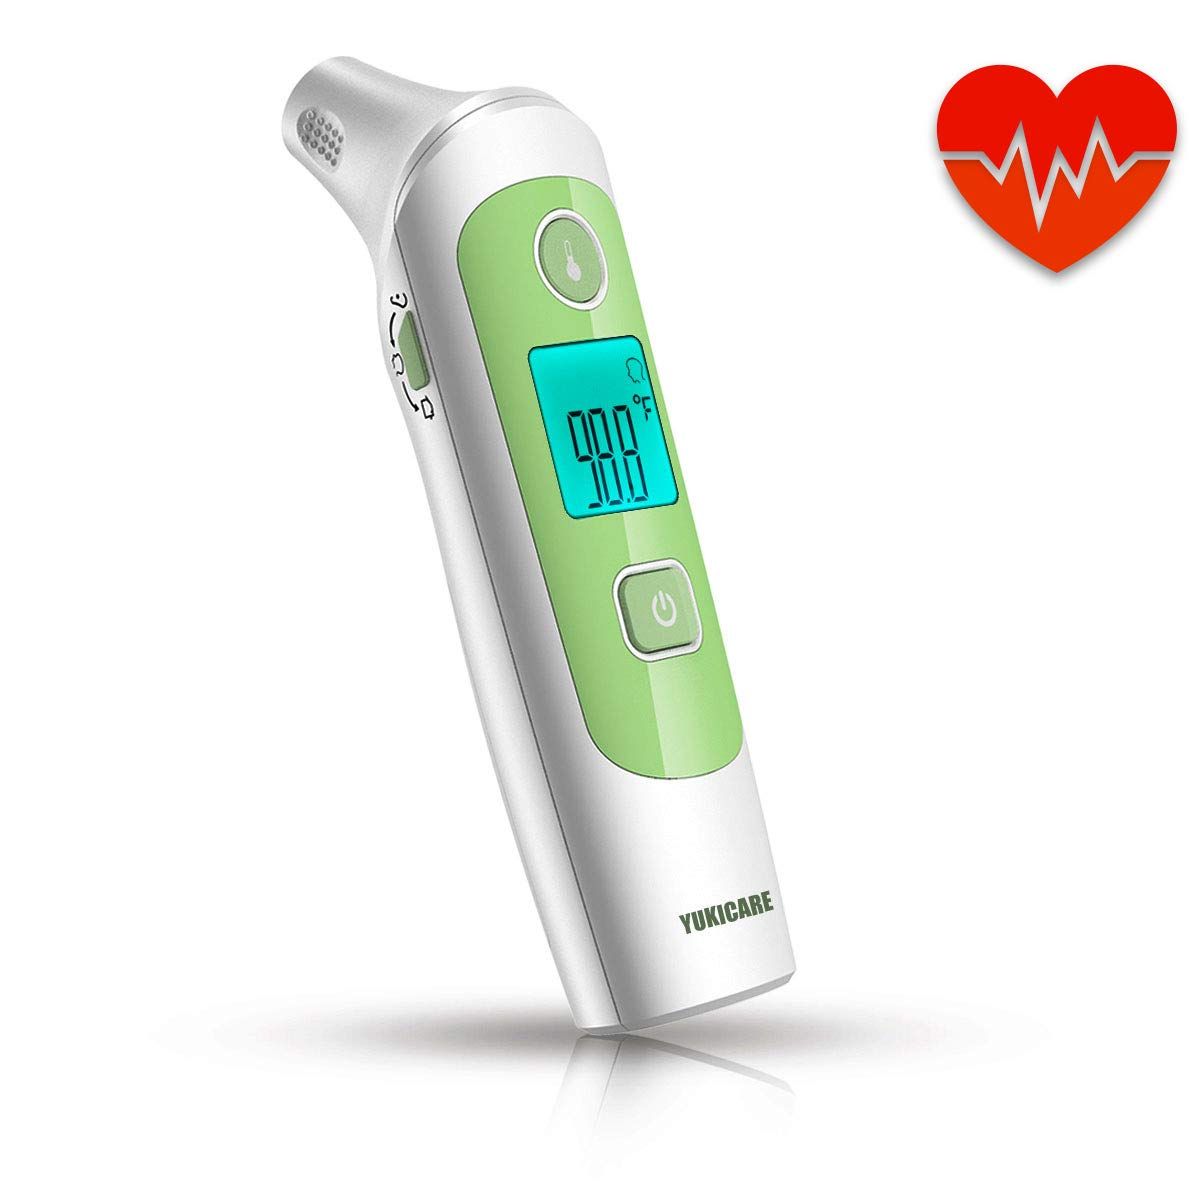 Amazon.com: Baby Ear and Forehead Thermometer, Digital Infrared Instant Medical Thermometer Professional for Infants, Toddler, Adults and Objects - CE and ...